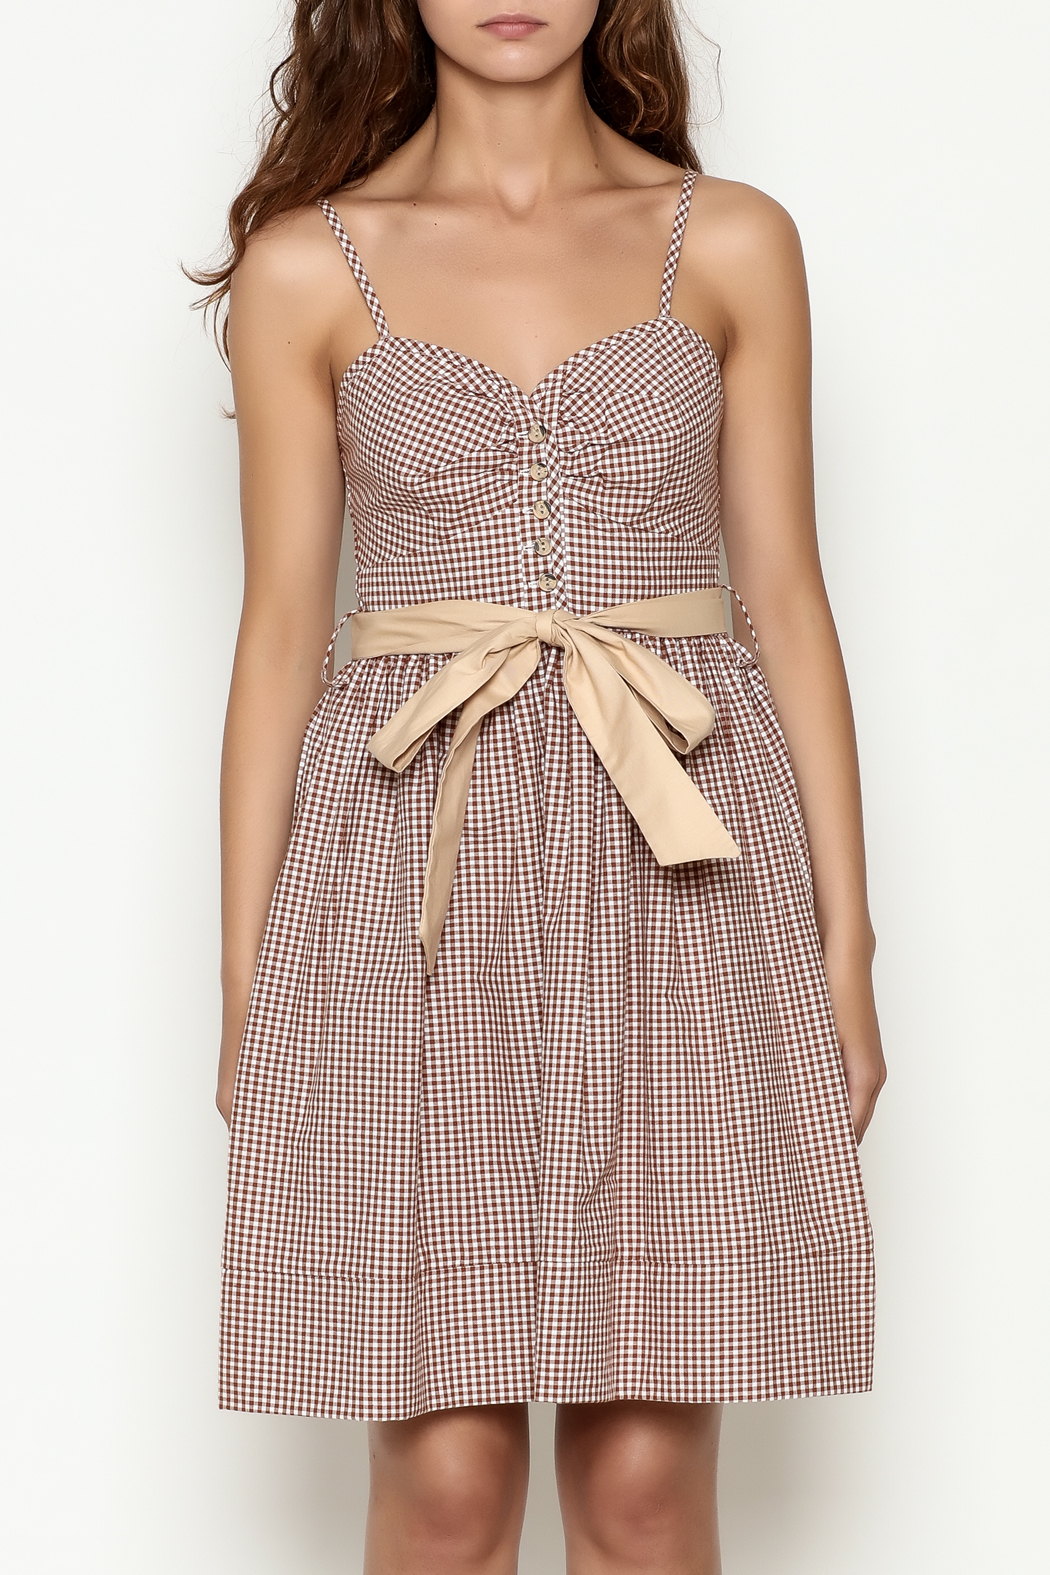 Roberta Oaks Gingham Print Dress - Front Full Image